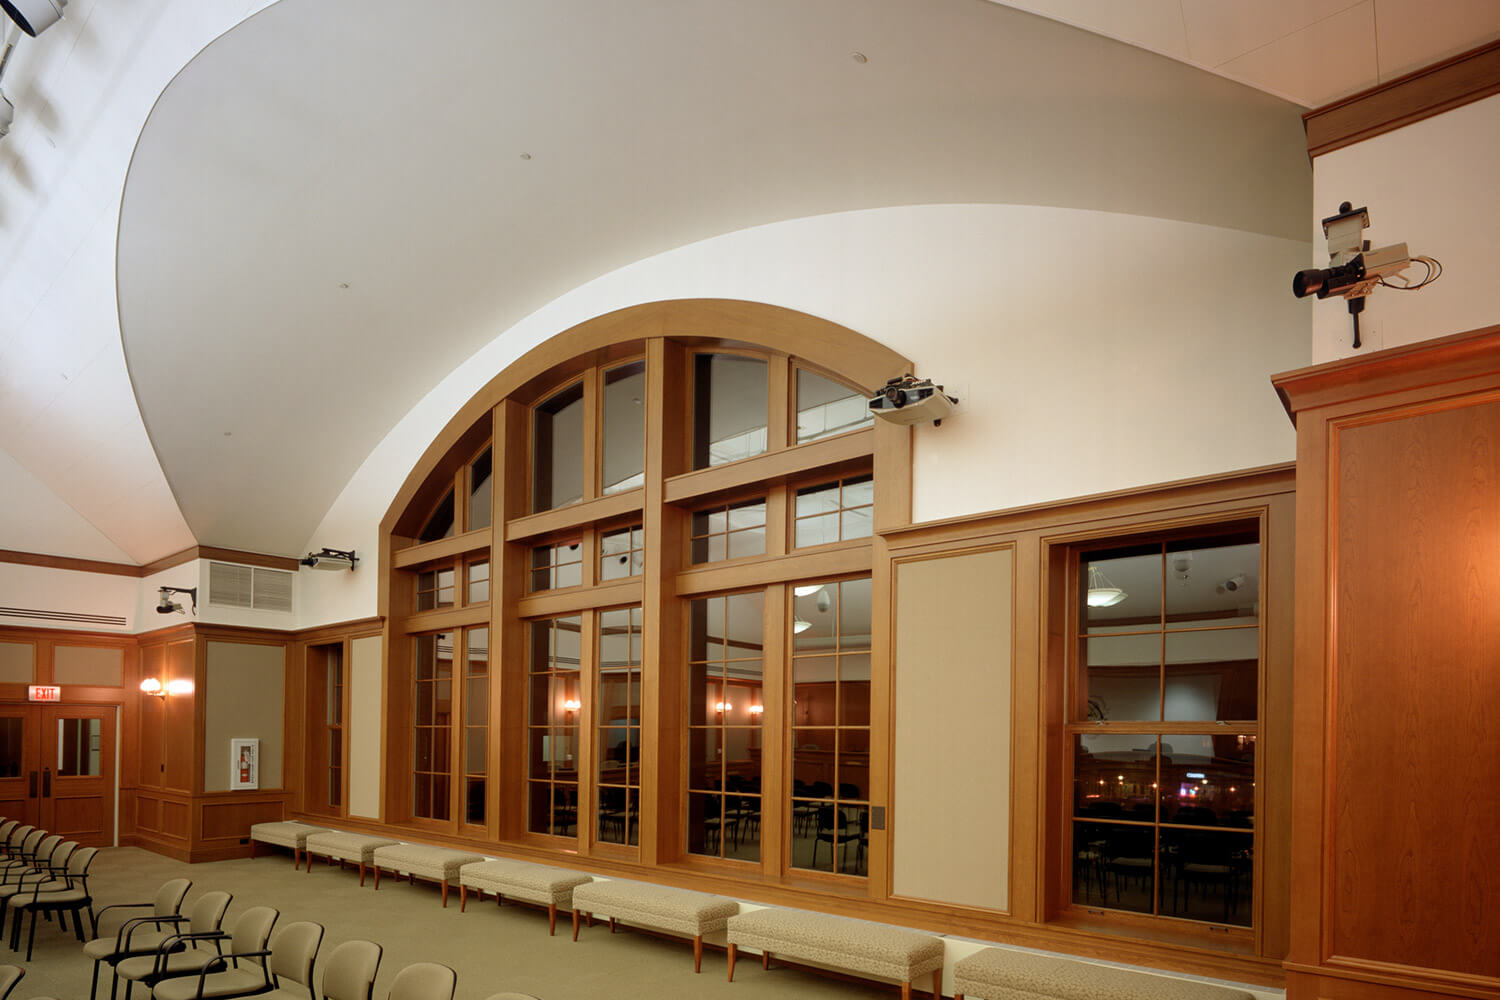 Mount Prospect Village Hall interior